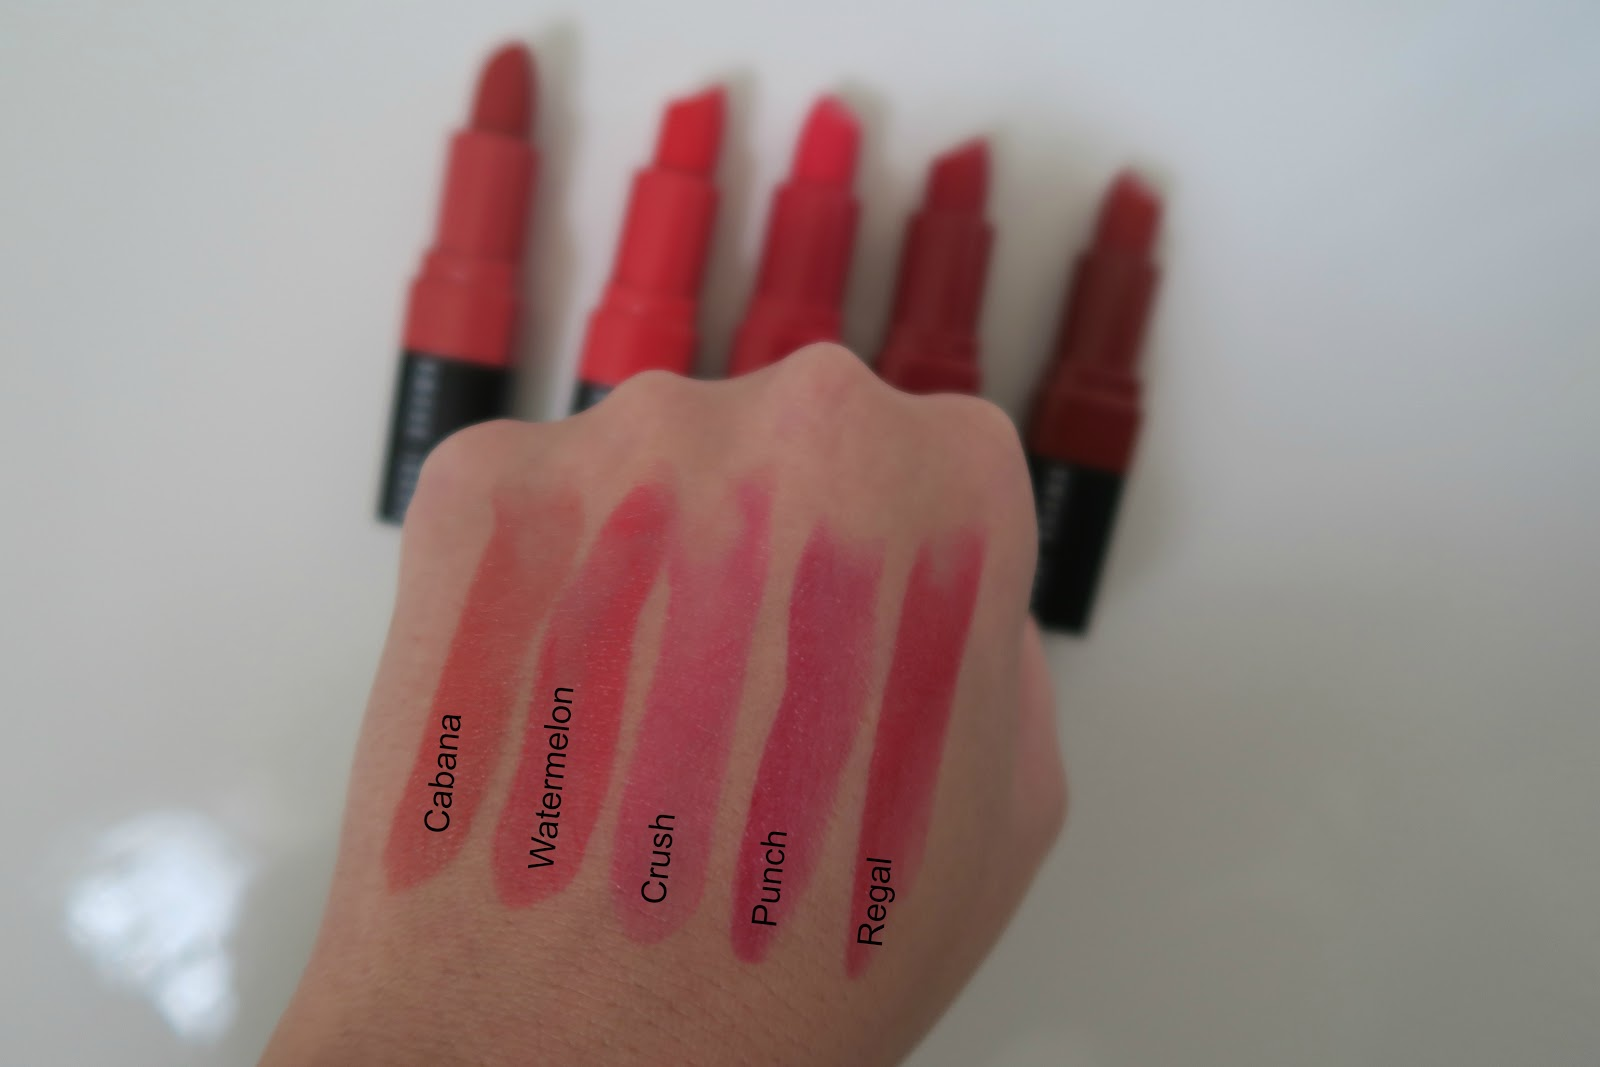 Bobbi Brown Crushed Lip Color swatch